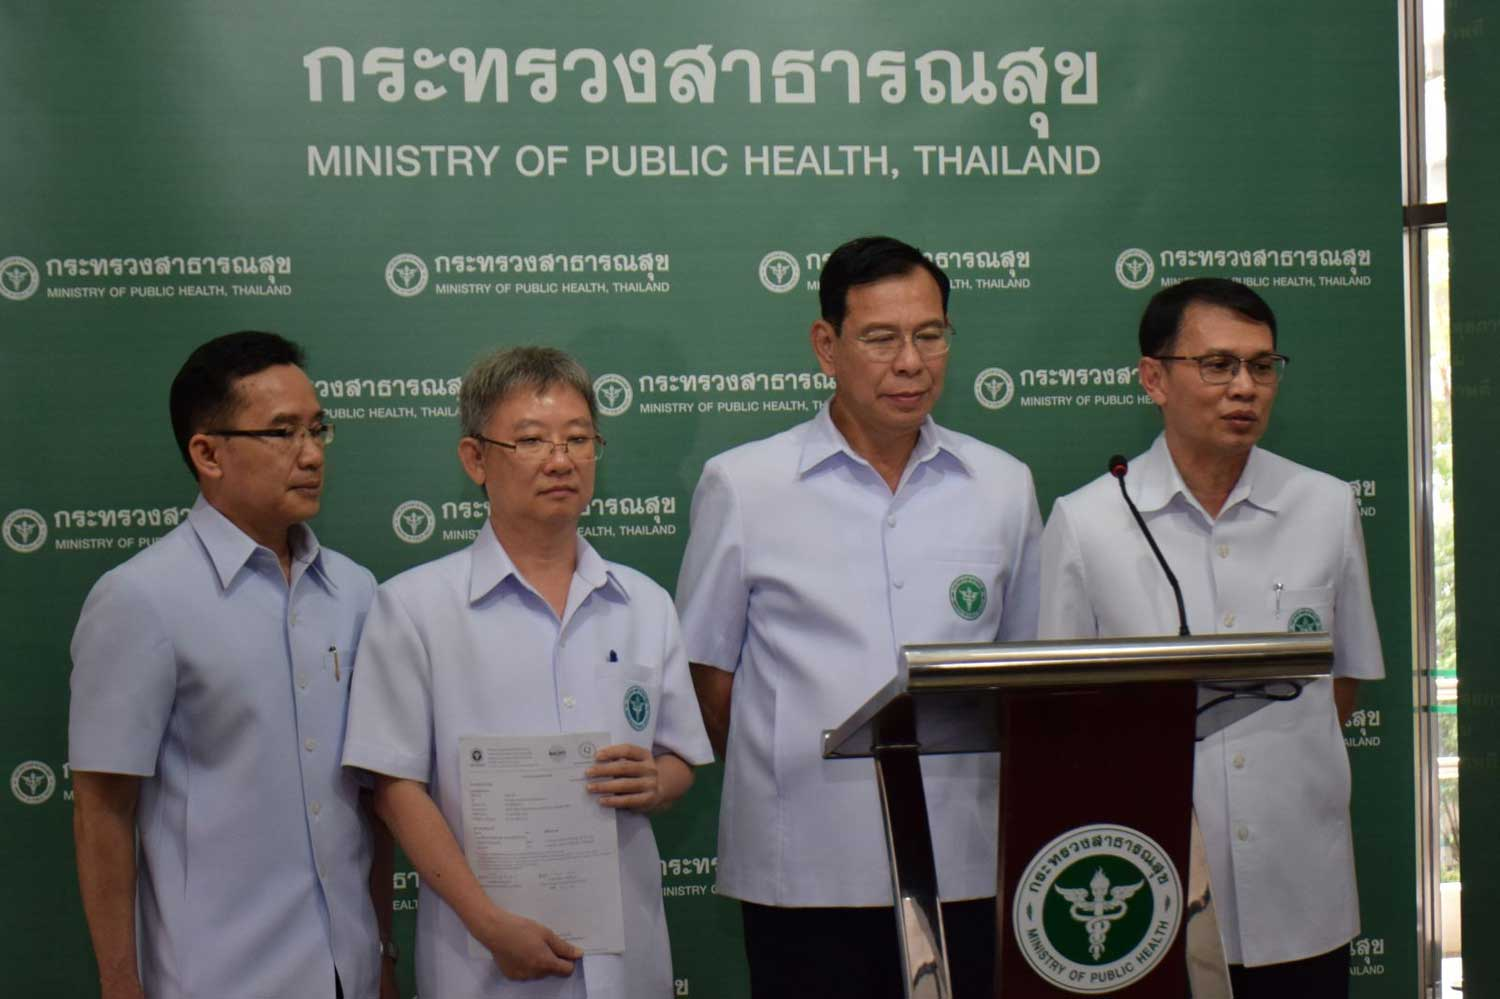 From left, Dr Narong Saiwongse, deputy permanent secretary for health, Dr Opart Karnkawinpong, director-general of the Medical Sciences Department, Dr Sukhum Karnchanapimai, permanent secretary for health, and Dr Paisarn Dunkum, secretary-general of the Food and Drug Administration, confirm the ban on three toxic farm chemicals, at the Public Health Ministry in Nonthaburi province on Thursday. (Public Health Ministry photo)